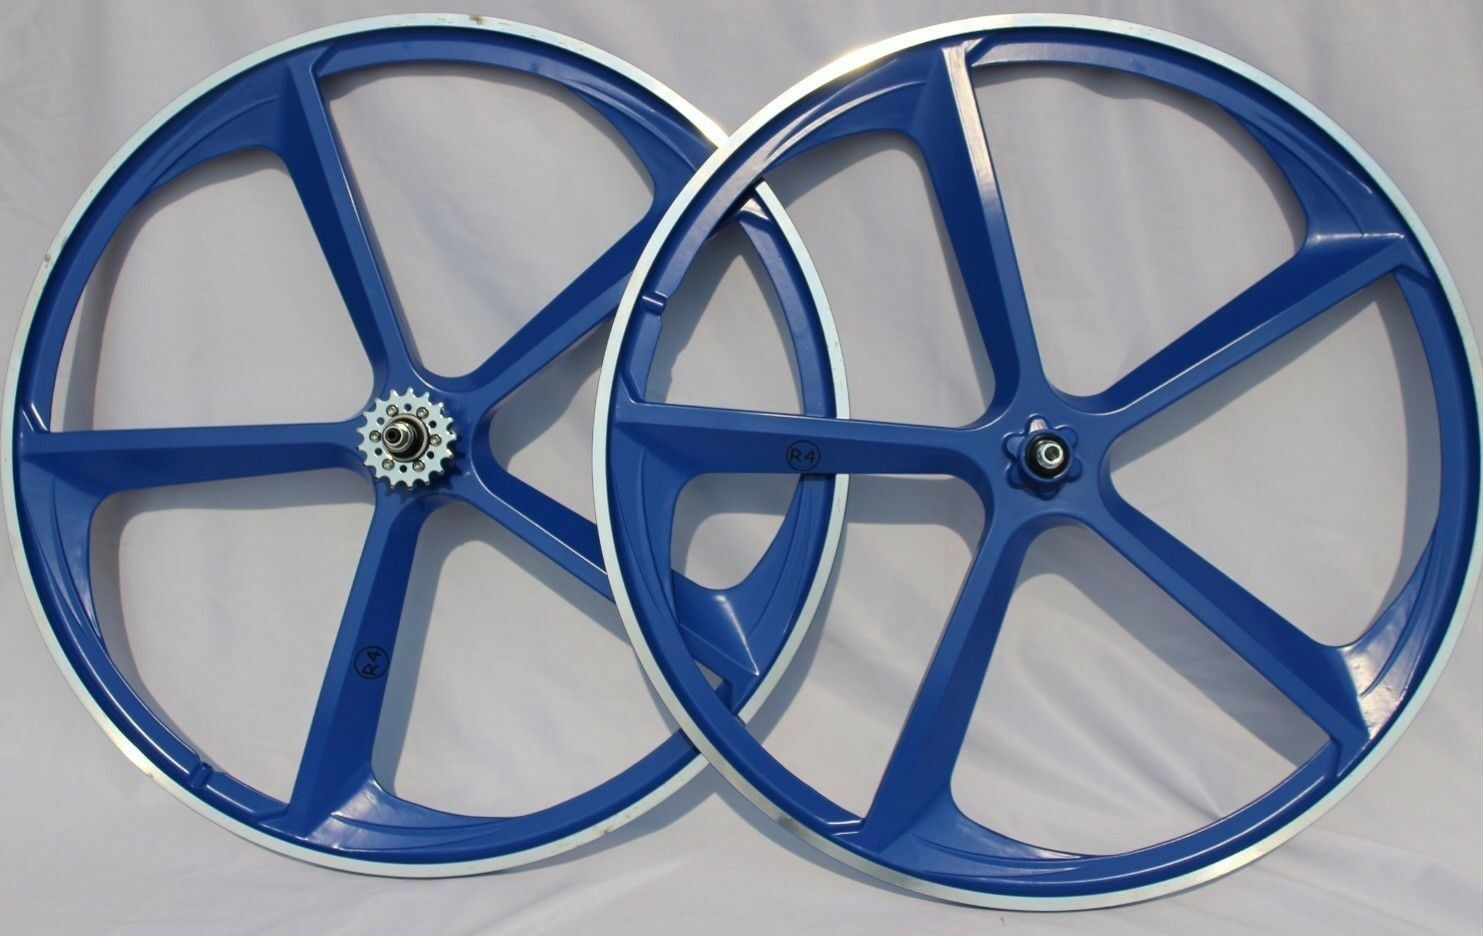 29  CNC BMX 5-Spoke Mag Rims, Wheels, Sealed hubs W  Freewheel, bluee